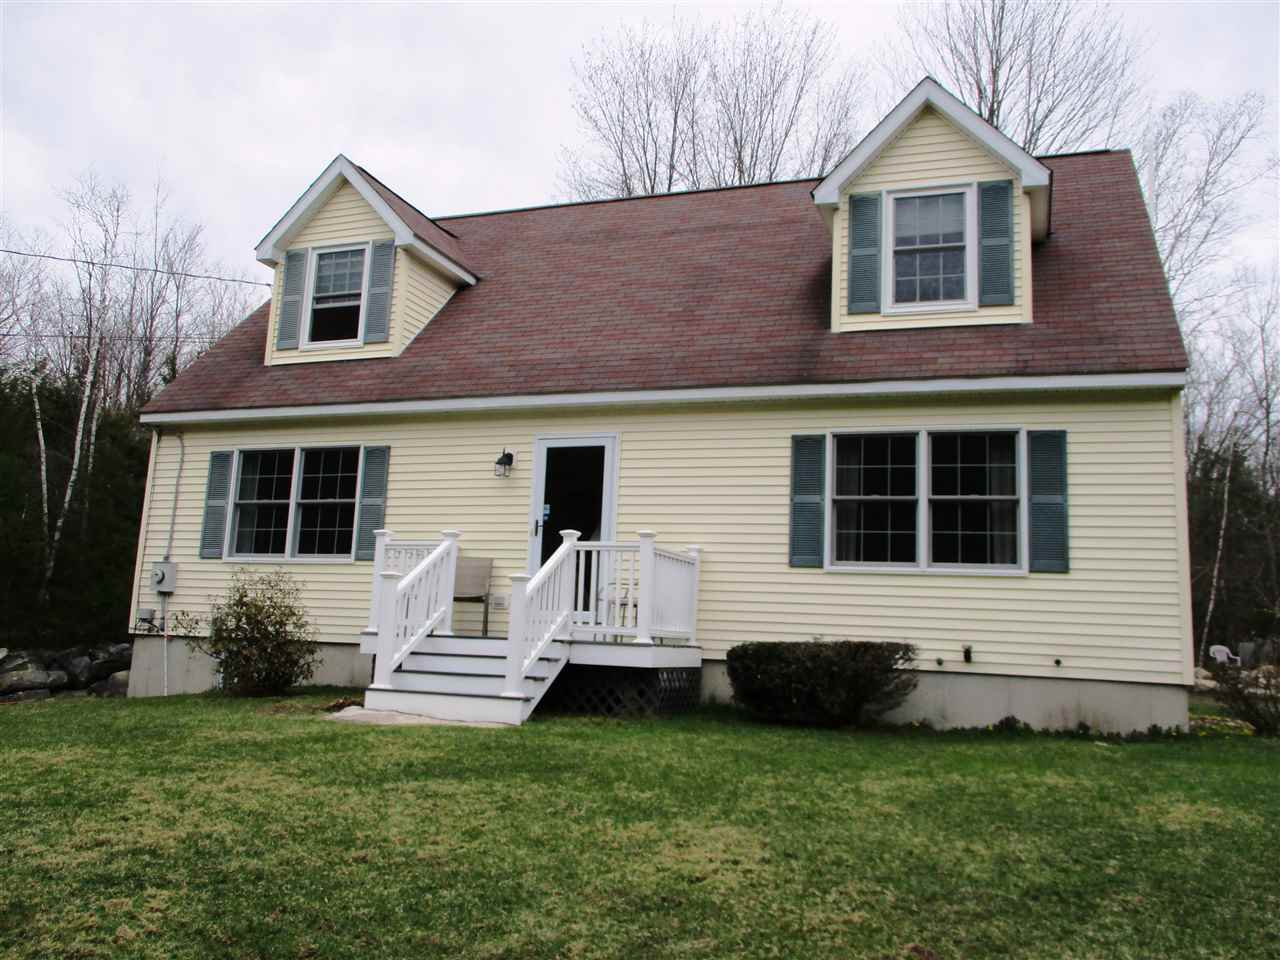 Photo of 17 Highfield Drive Allenstown NH 03275